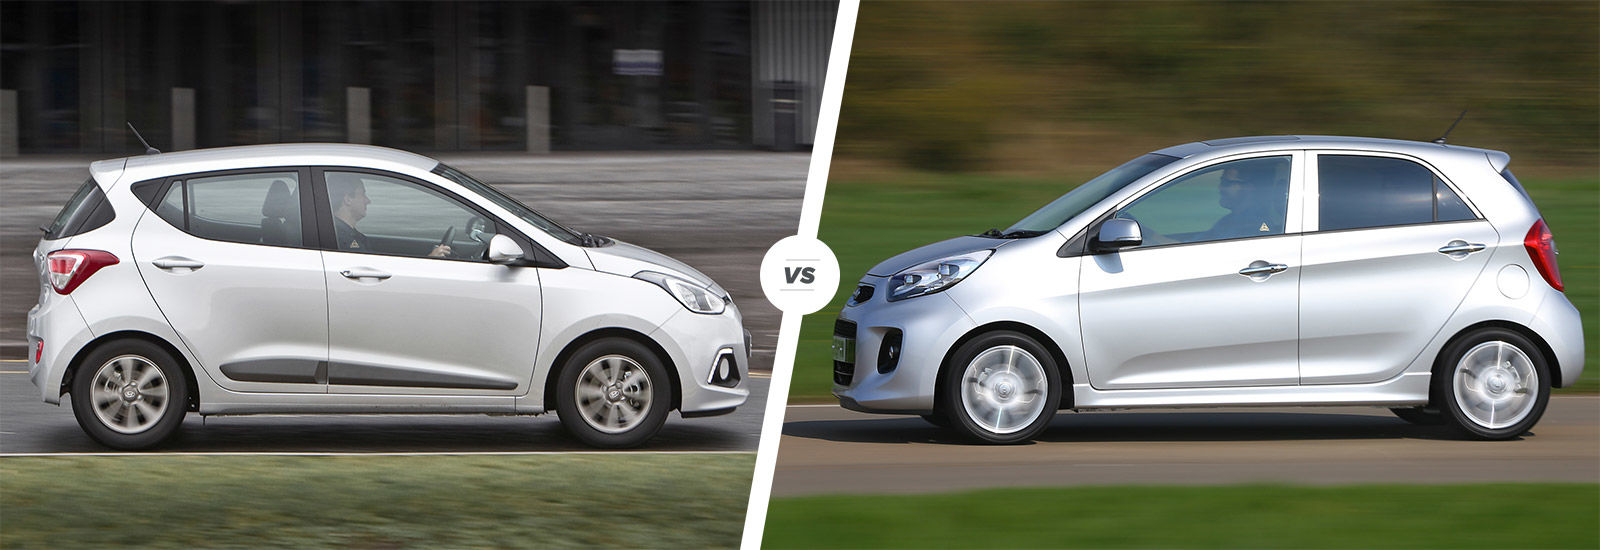 Five Star Hyundai >> Hyundai i10 vs Kia Picanto comparison | carwow